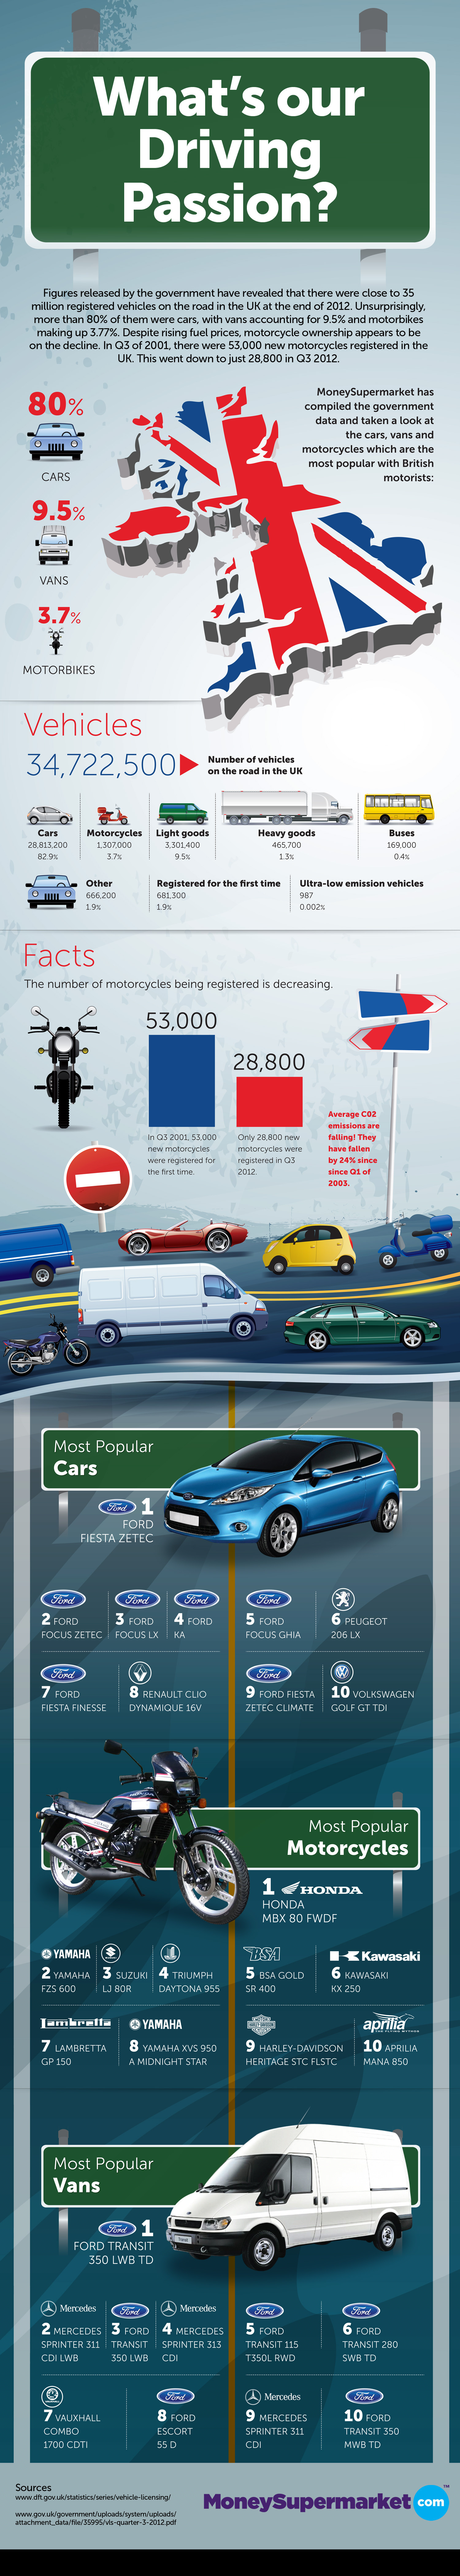 What's Our Driving Passion? Infographic